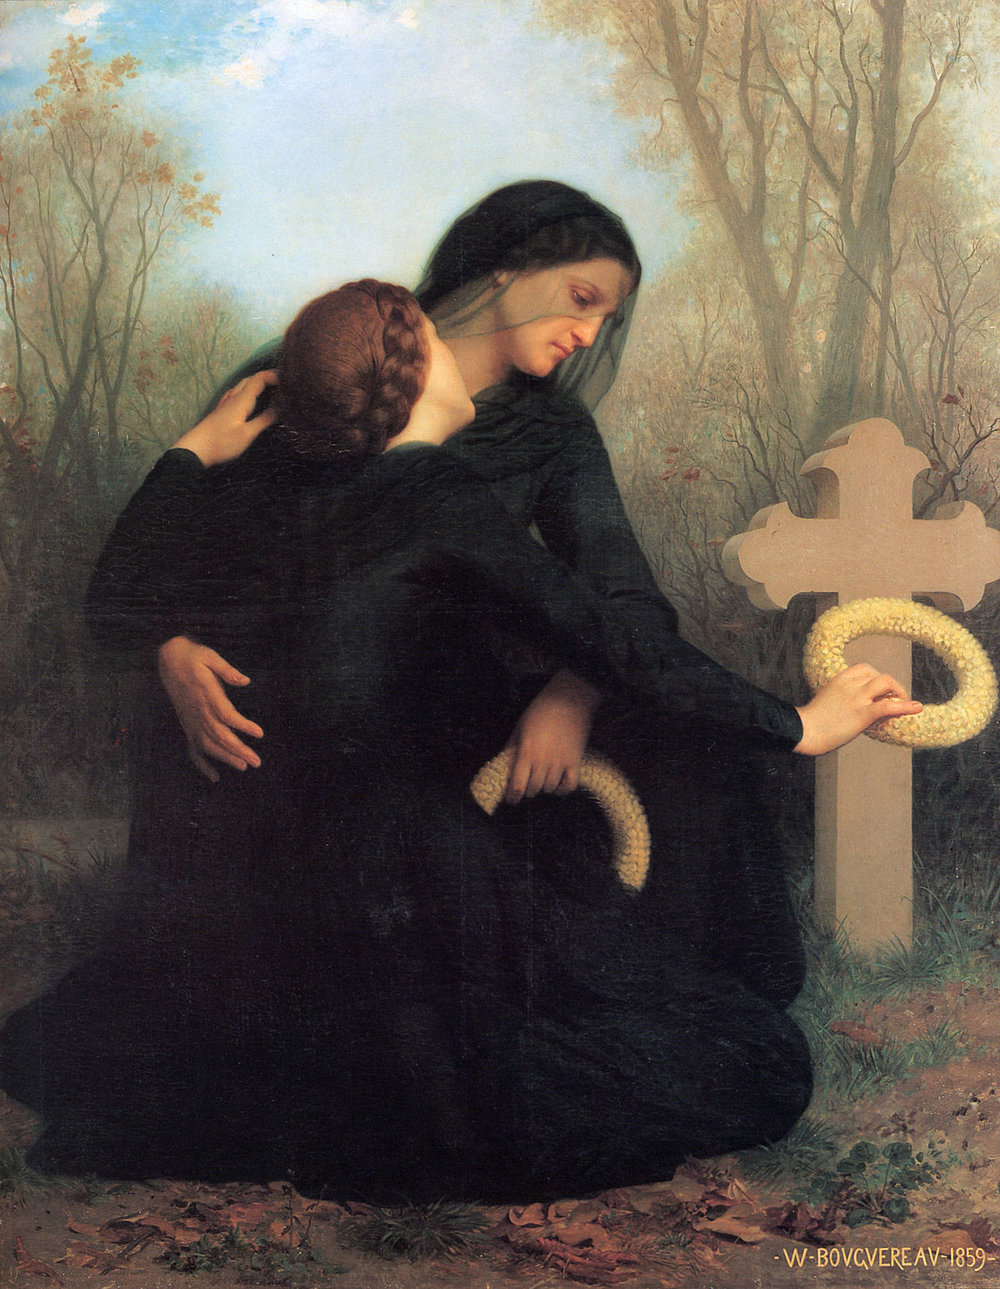 William-Adolphe_Bouguereau_(1825-1905)_-_The_Day_of_the_Dead_(1859).jpg